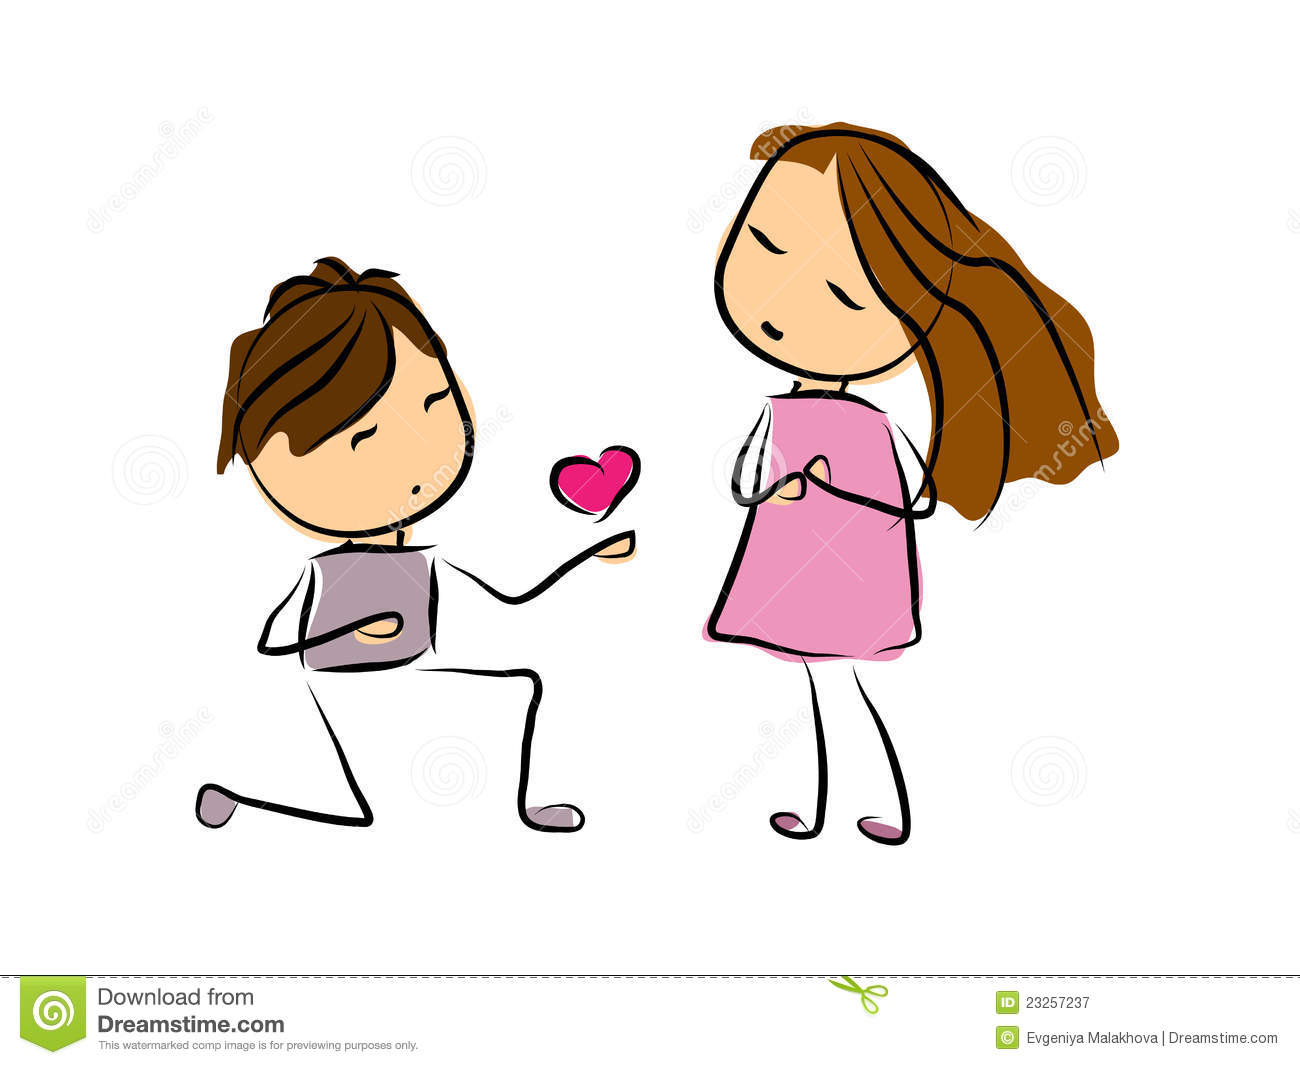 Doodle Couple Royalty Free Stock Photography - Image: 23257237